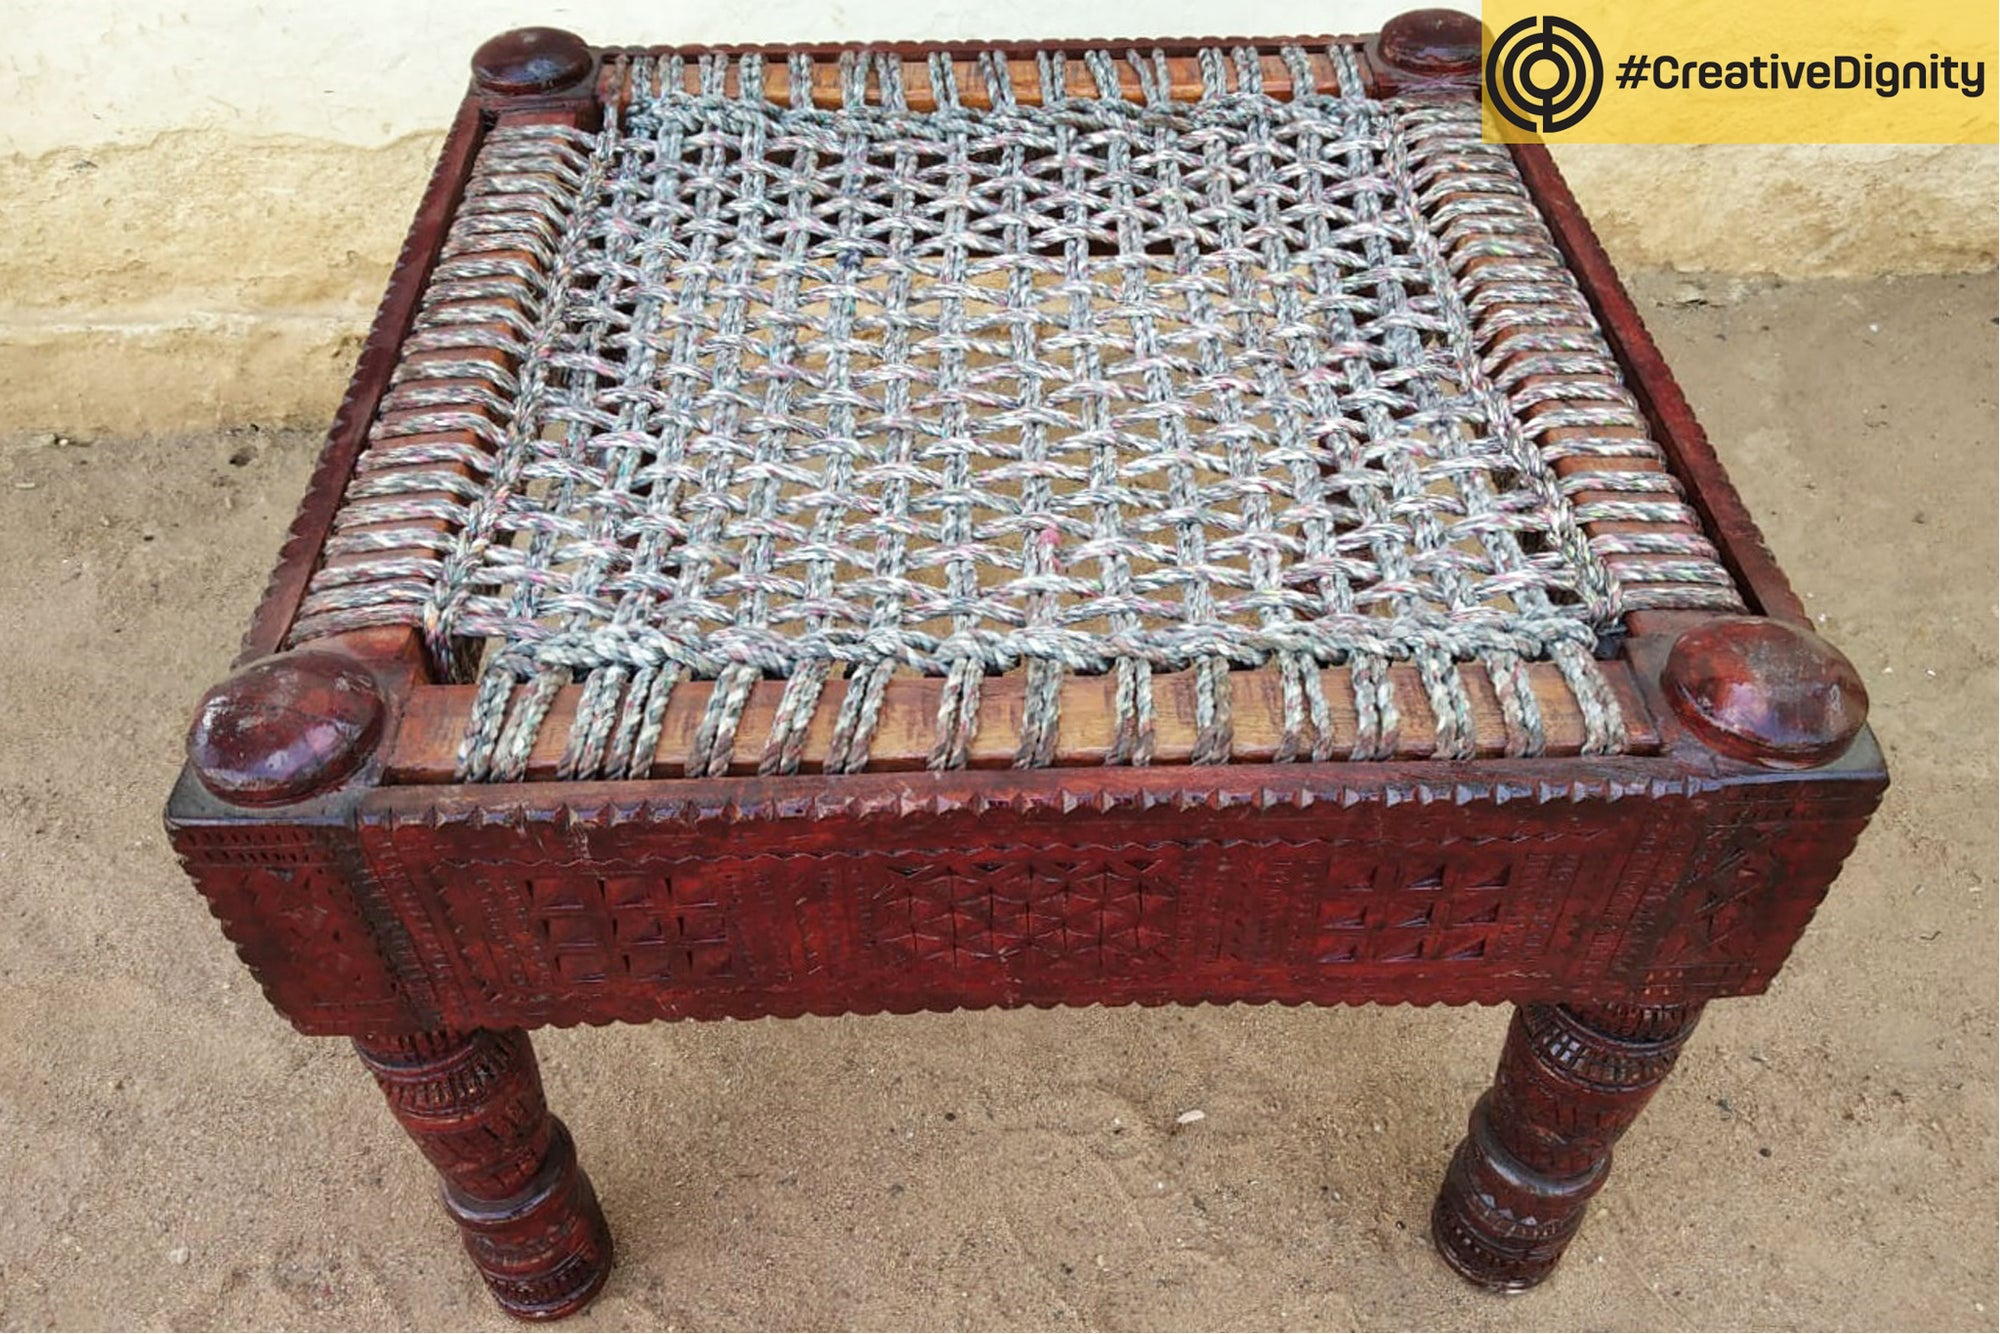 Handcarved Natural Neem Wood Chair by Vijay Jemal Marwada